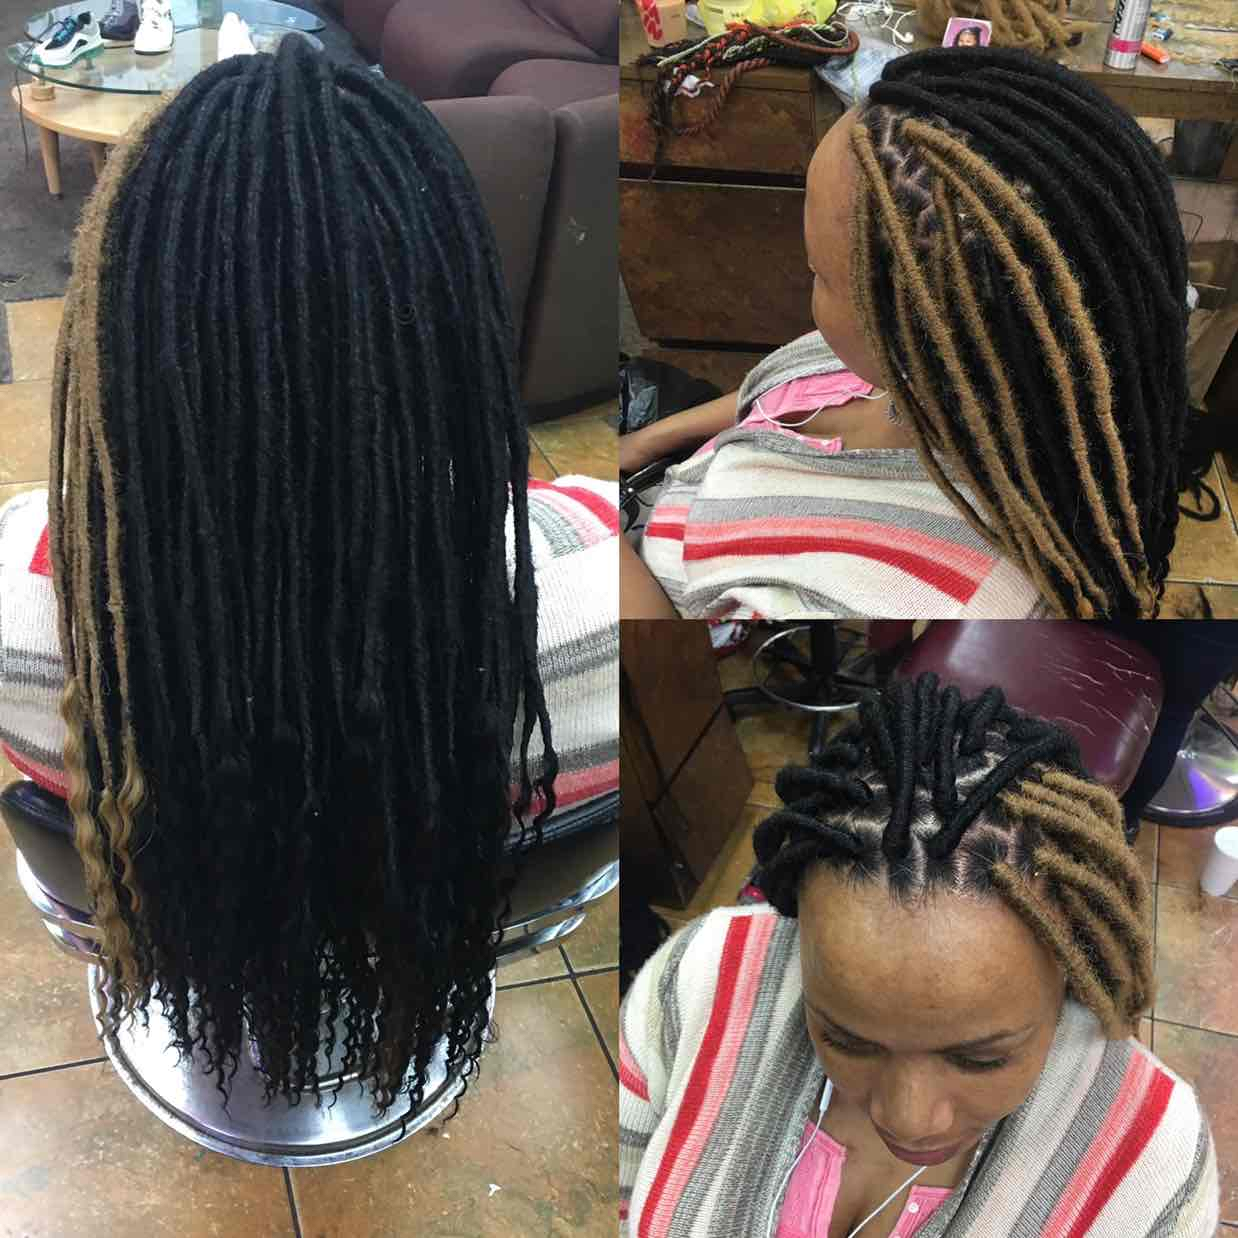 salon de coiffure afro tresse tresses box braids crochet braids vanilles tissages paris 75 77 78 91 92 93 94 95 VKTTEIKF